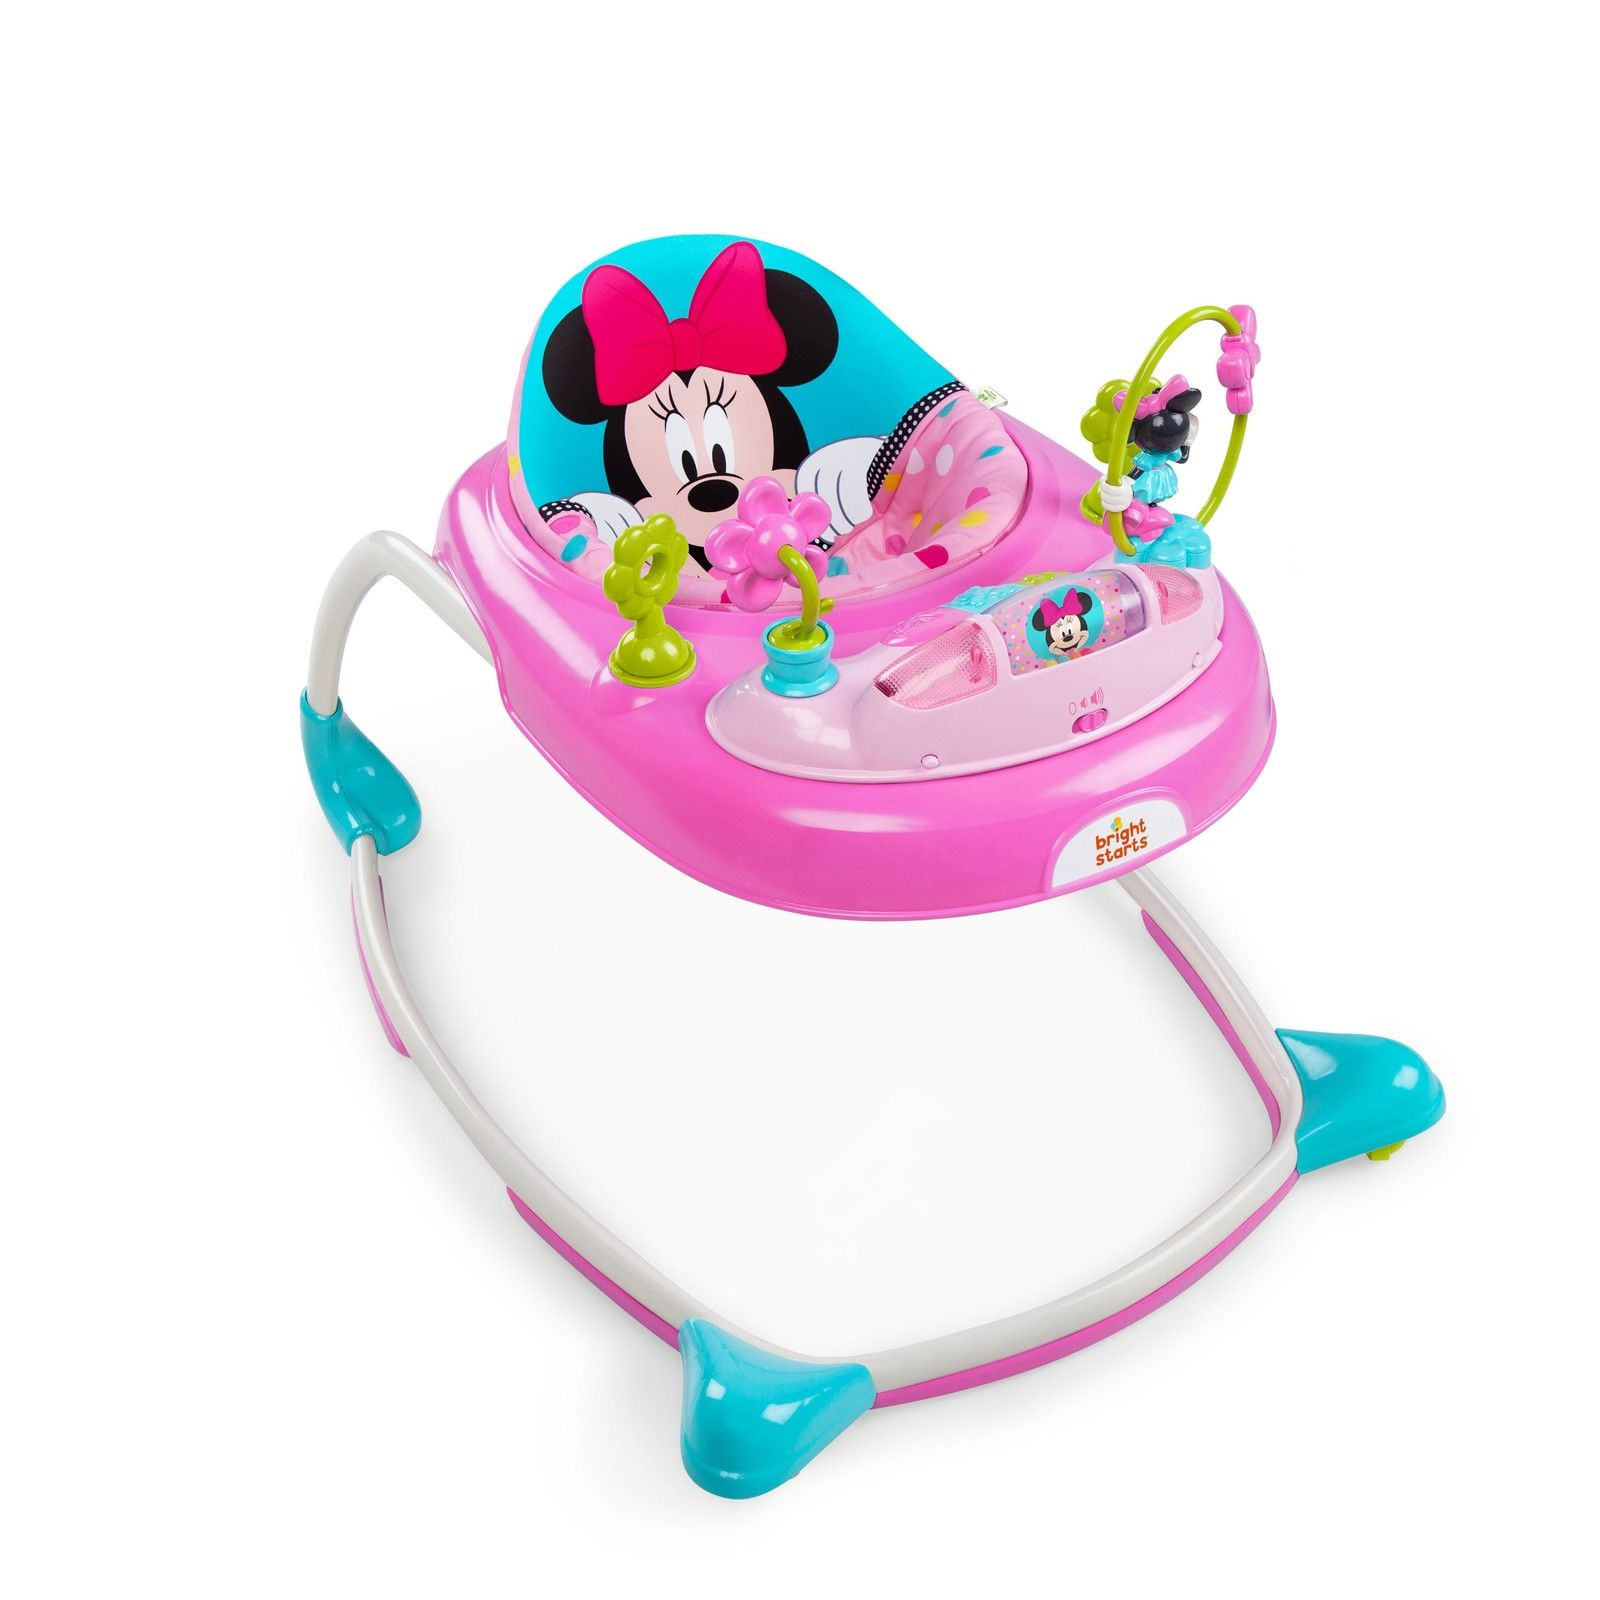 1600x1600 Disney Baby Minnie Mouse Peekaboo Walker Ebay